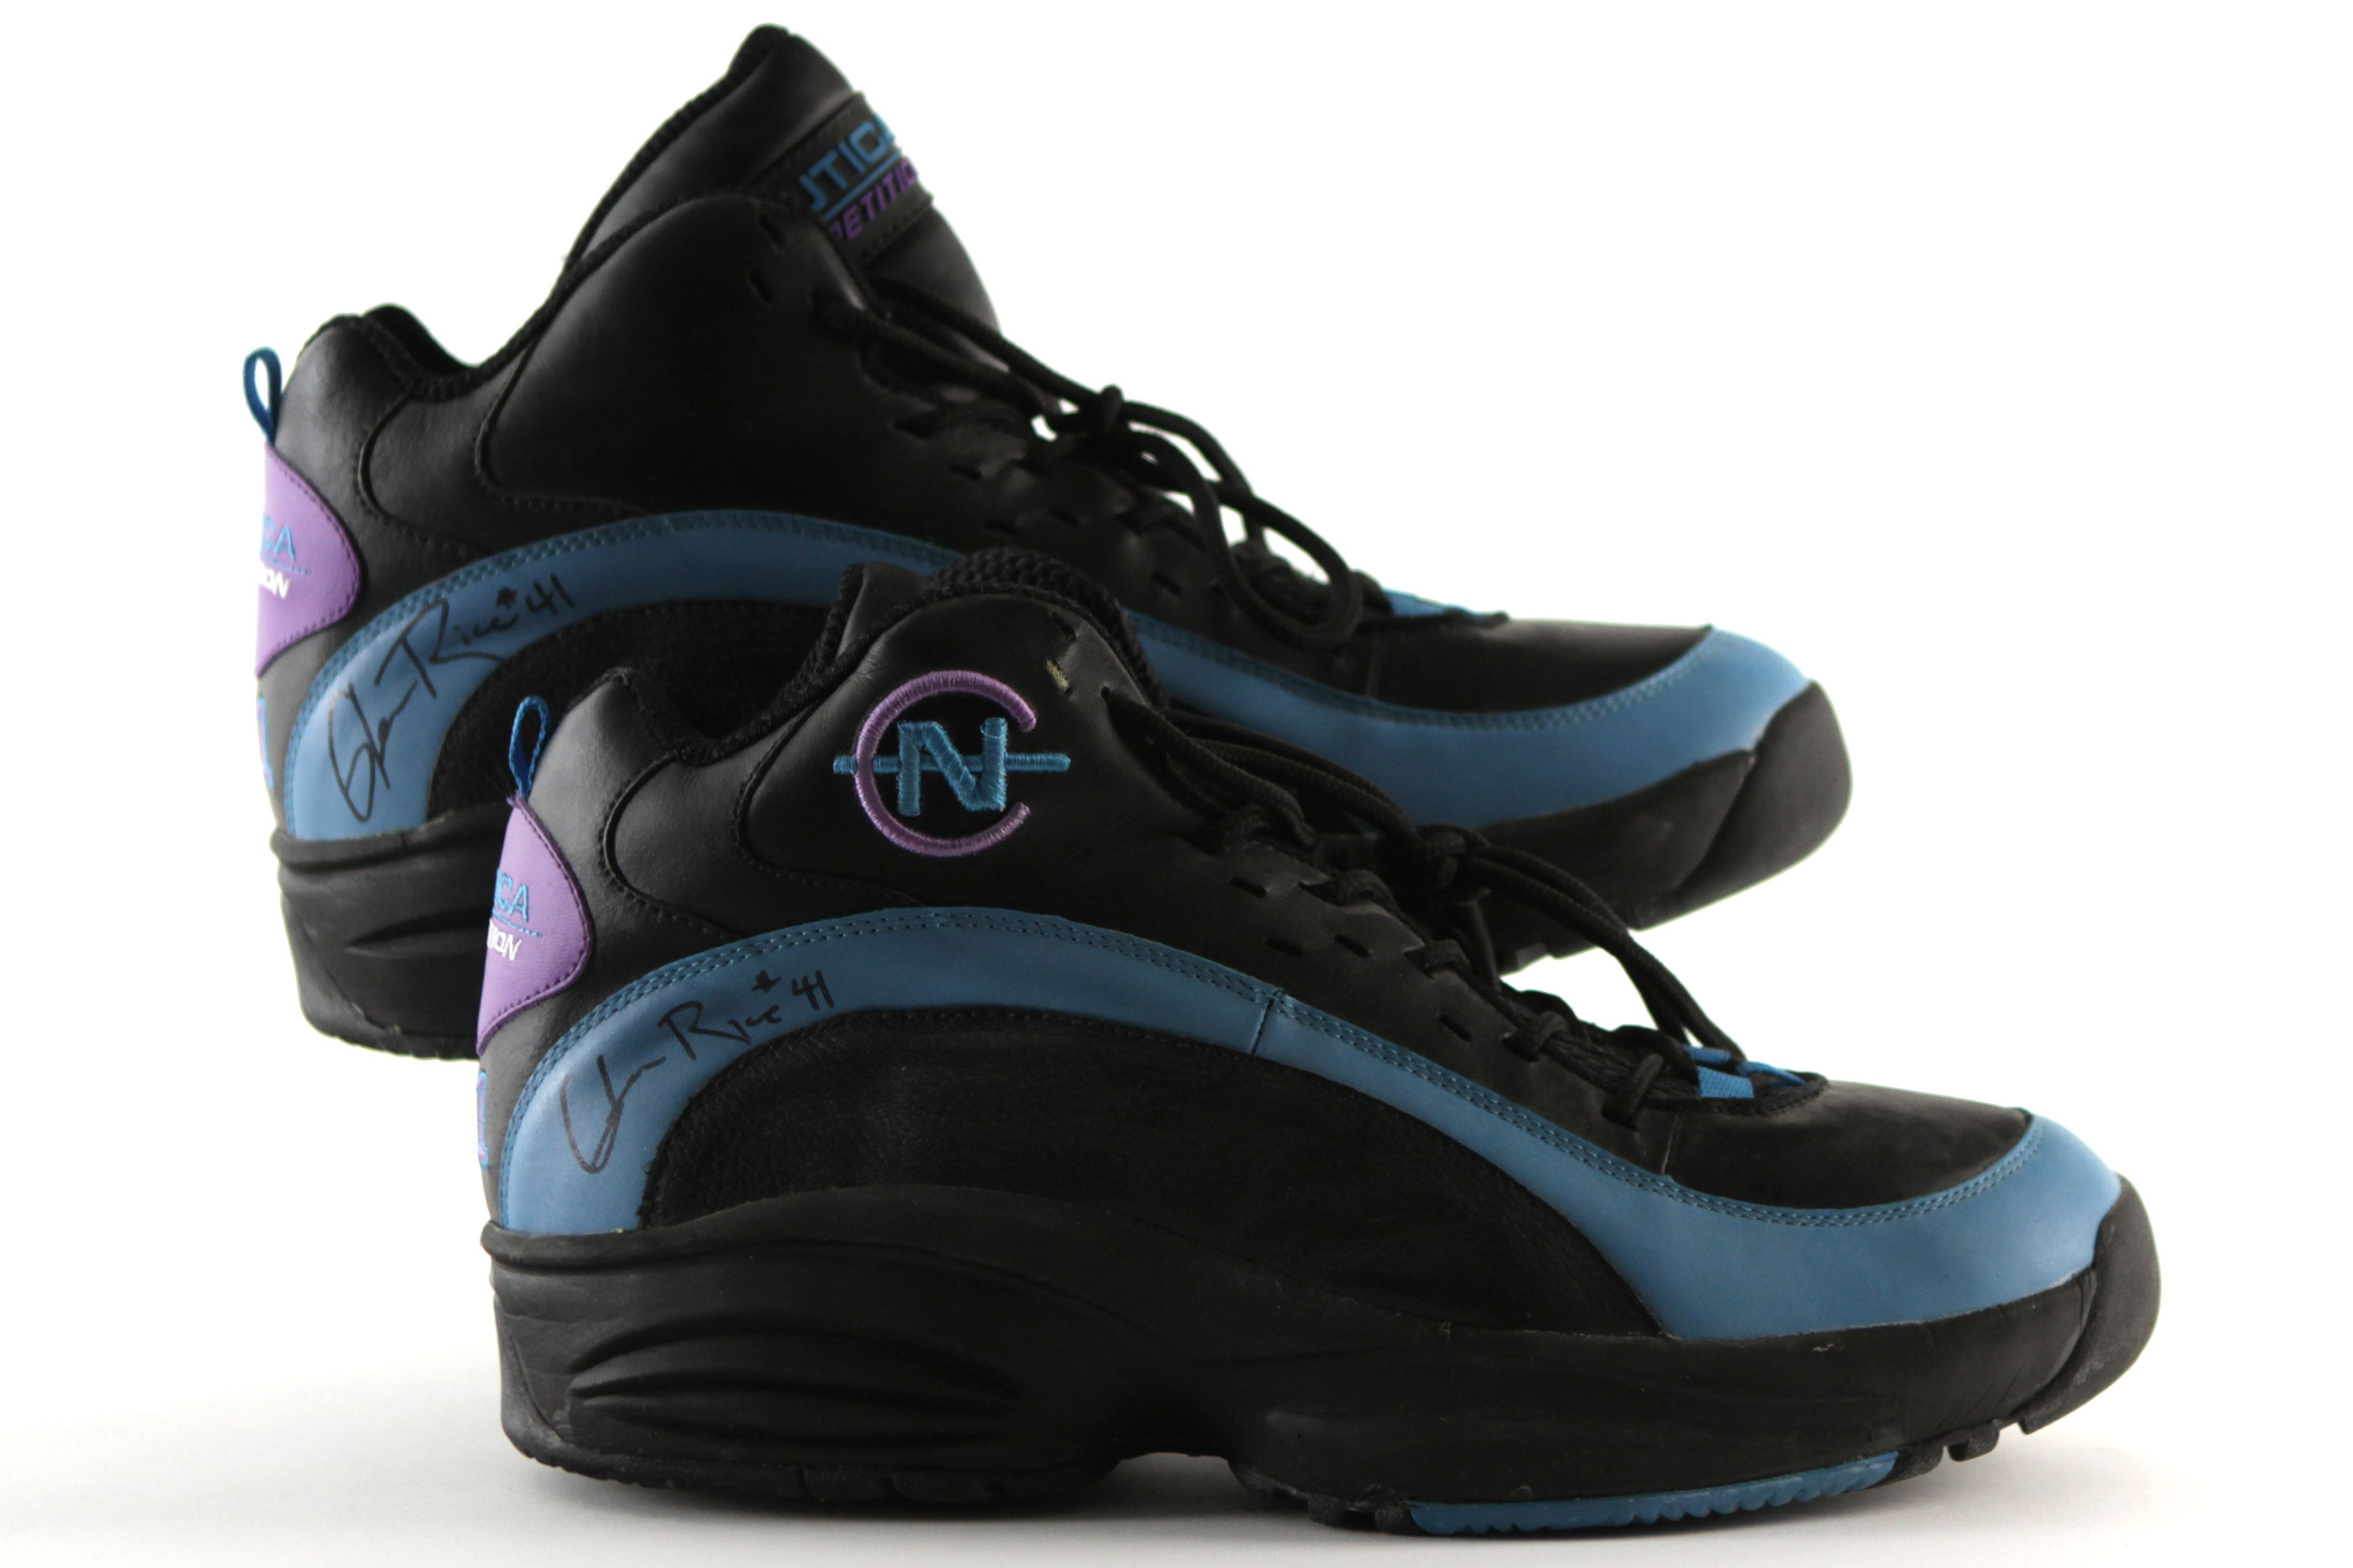 90s nautica competition shoes glen rice